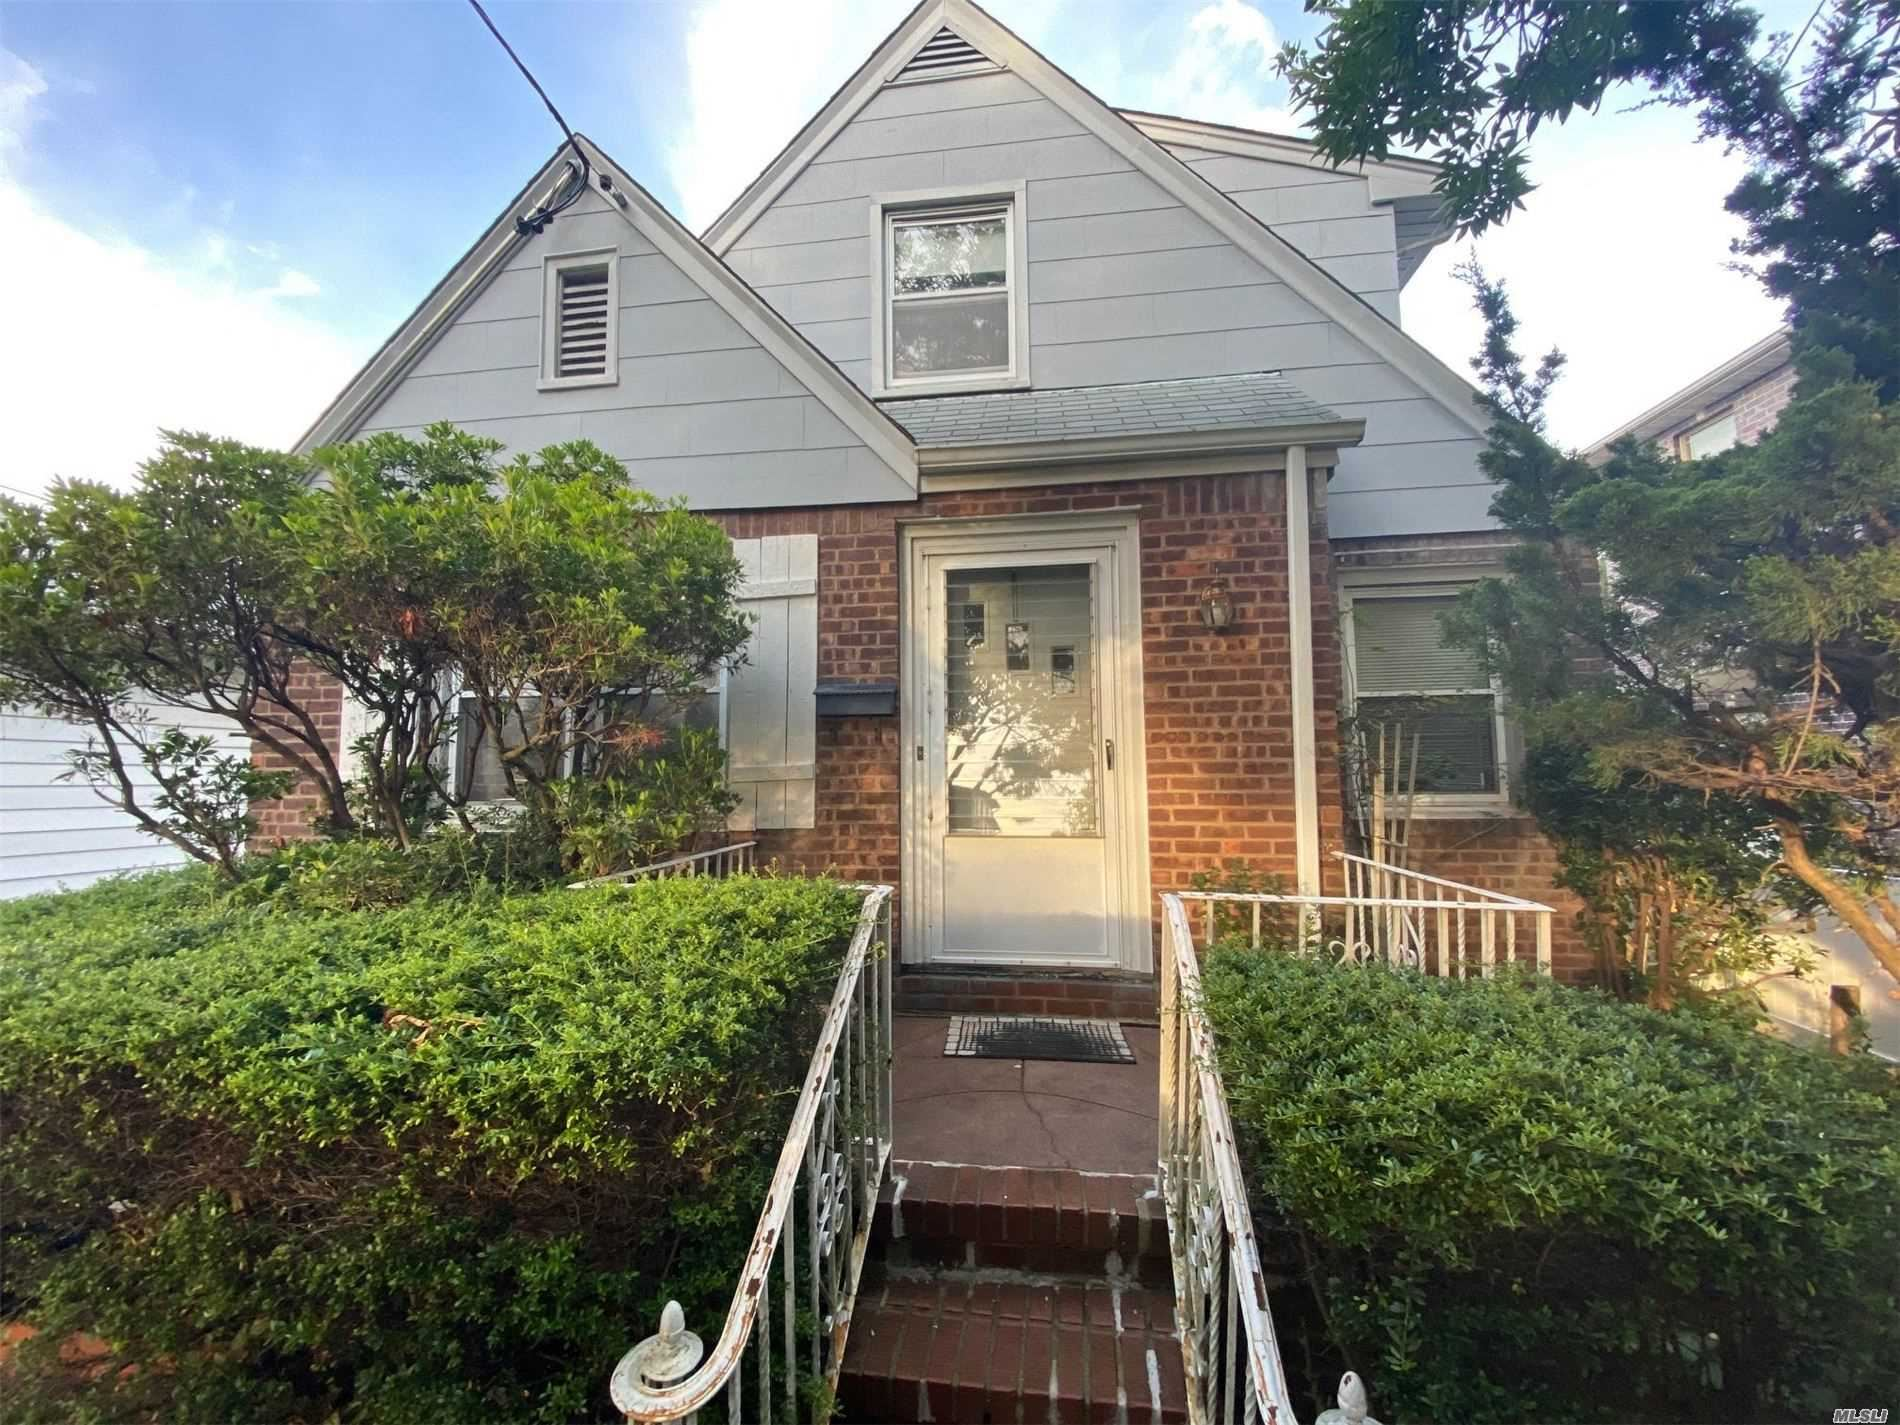 84-19 258 St, Floral Park, NY 11001 - MLS#: 3220616